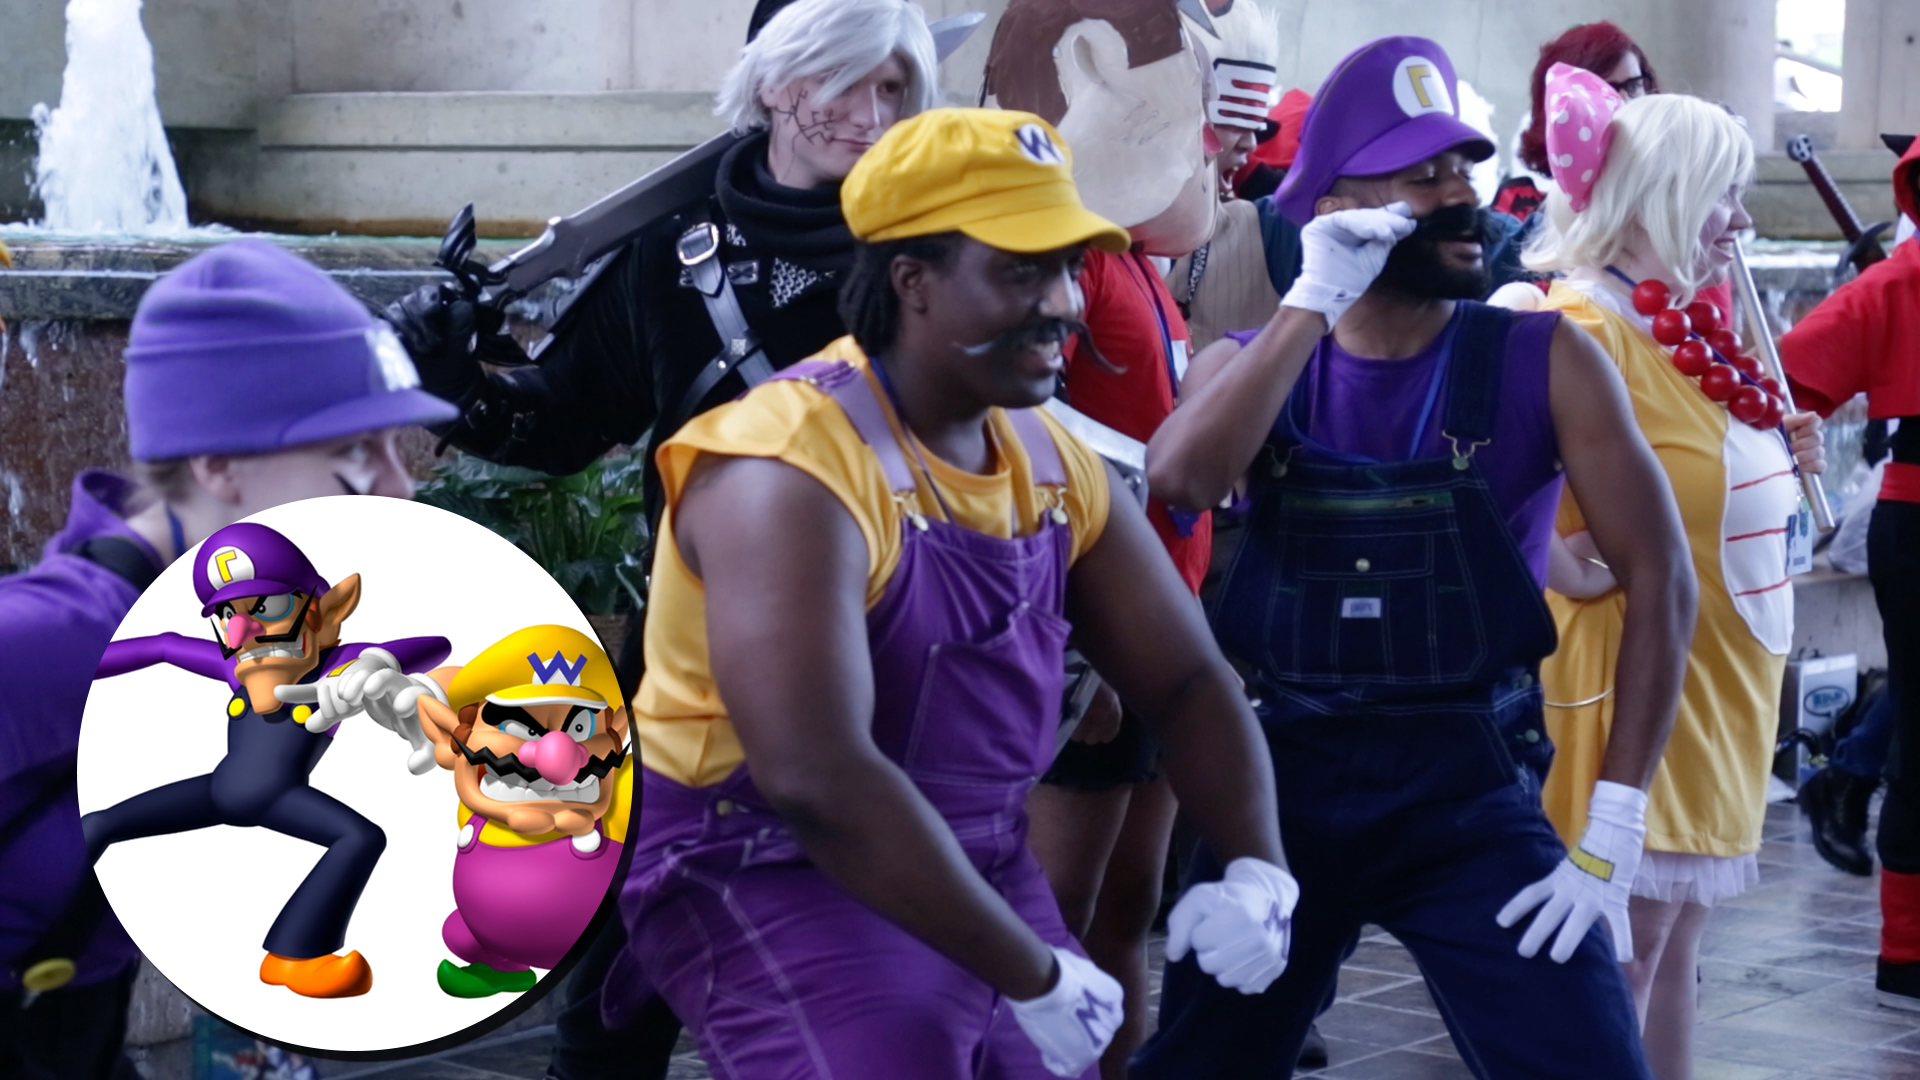 Wario and Waluigi Screen